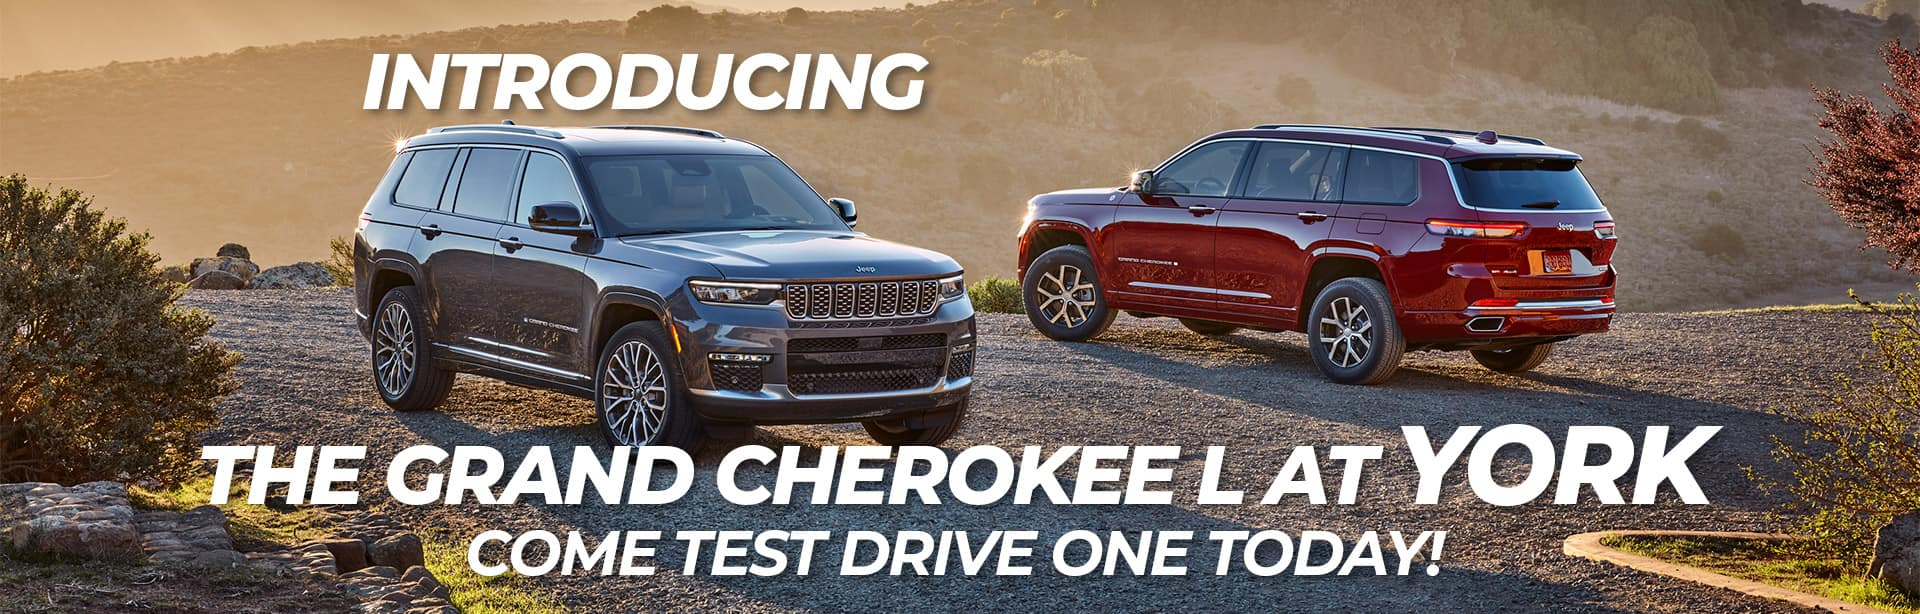 The Grand Cherokee L now In-Stock at York